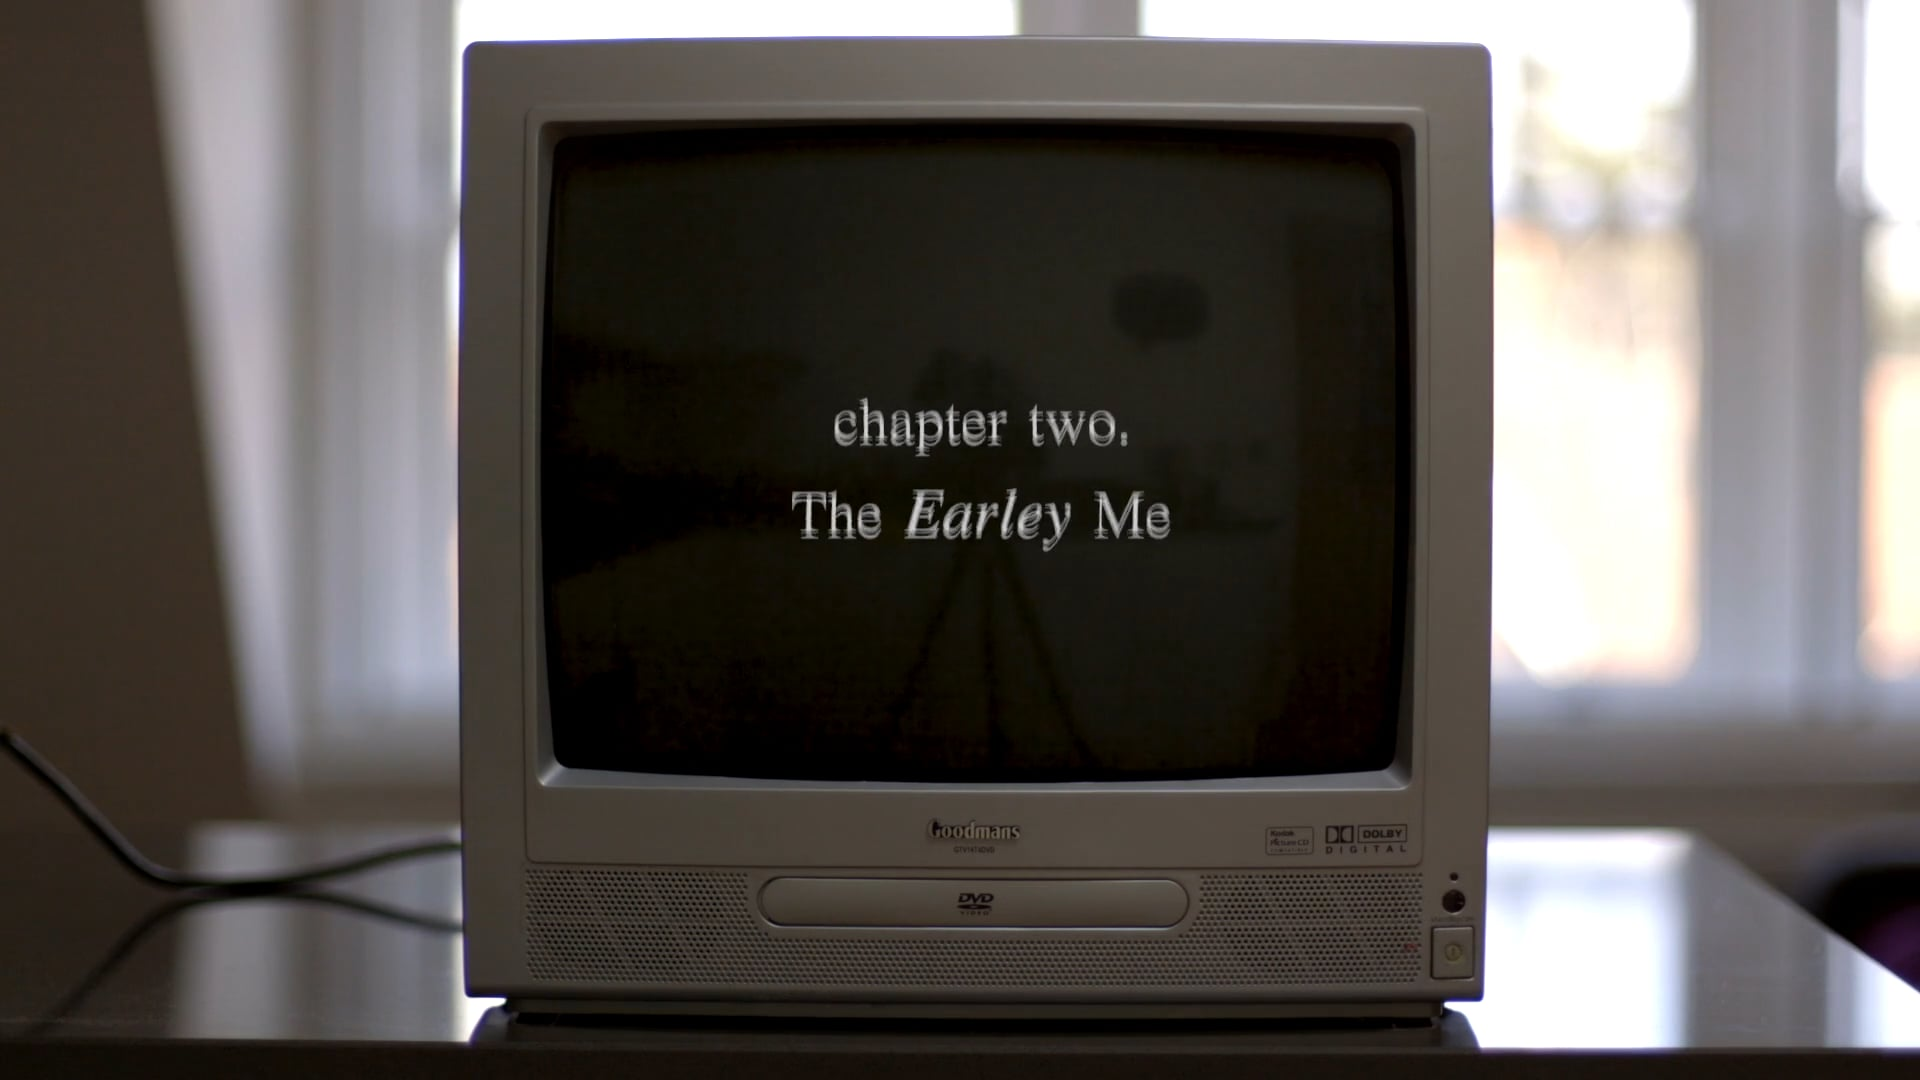 chapter two. The Earley Me